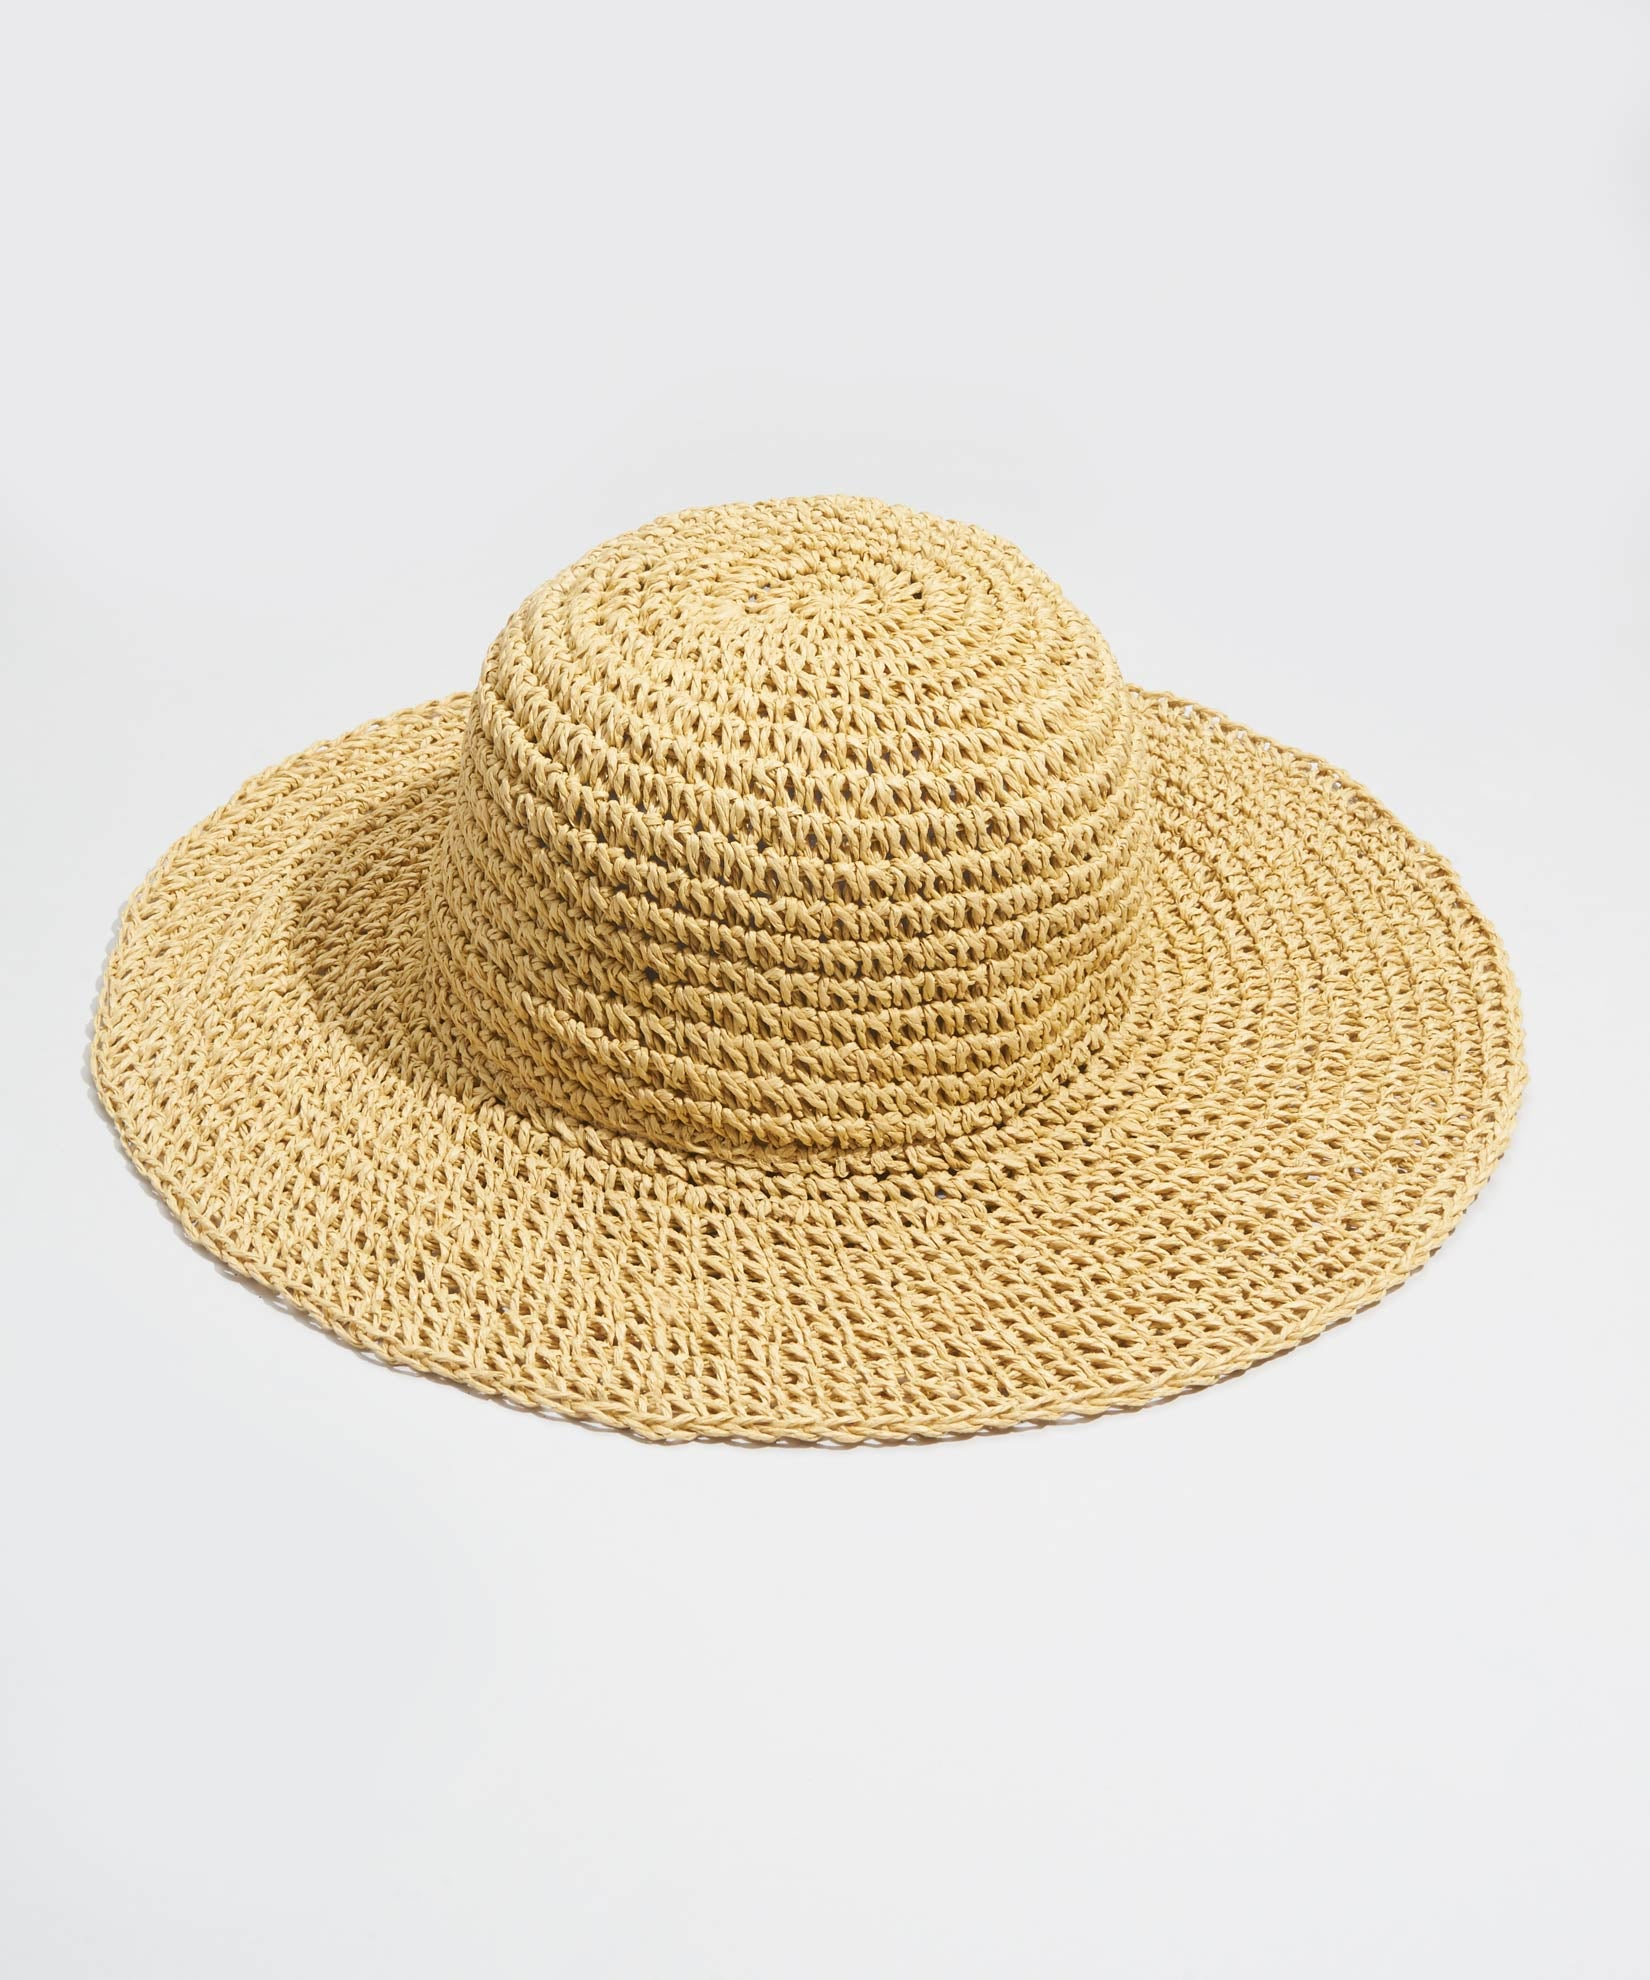 Natural - The Packable Crochet Hat